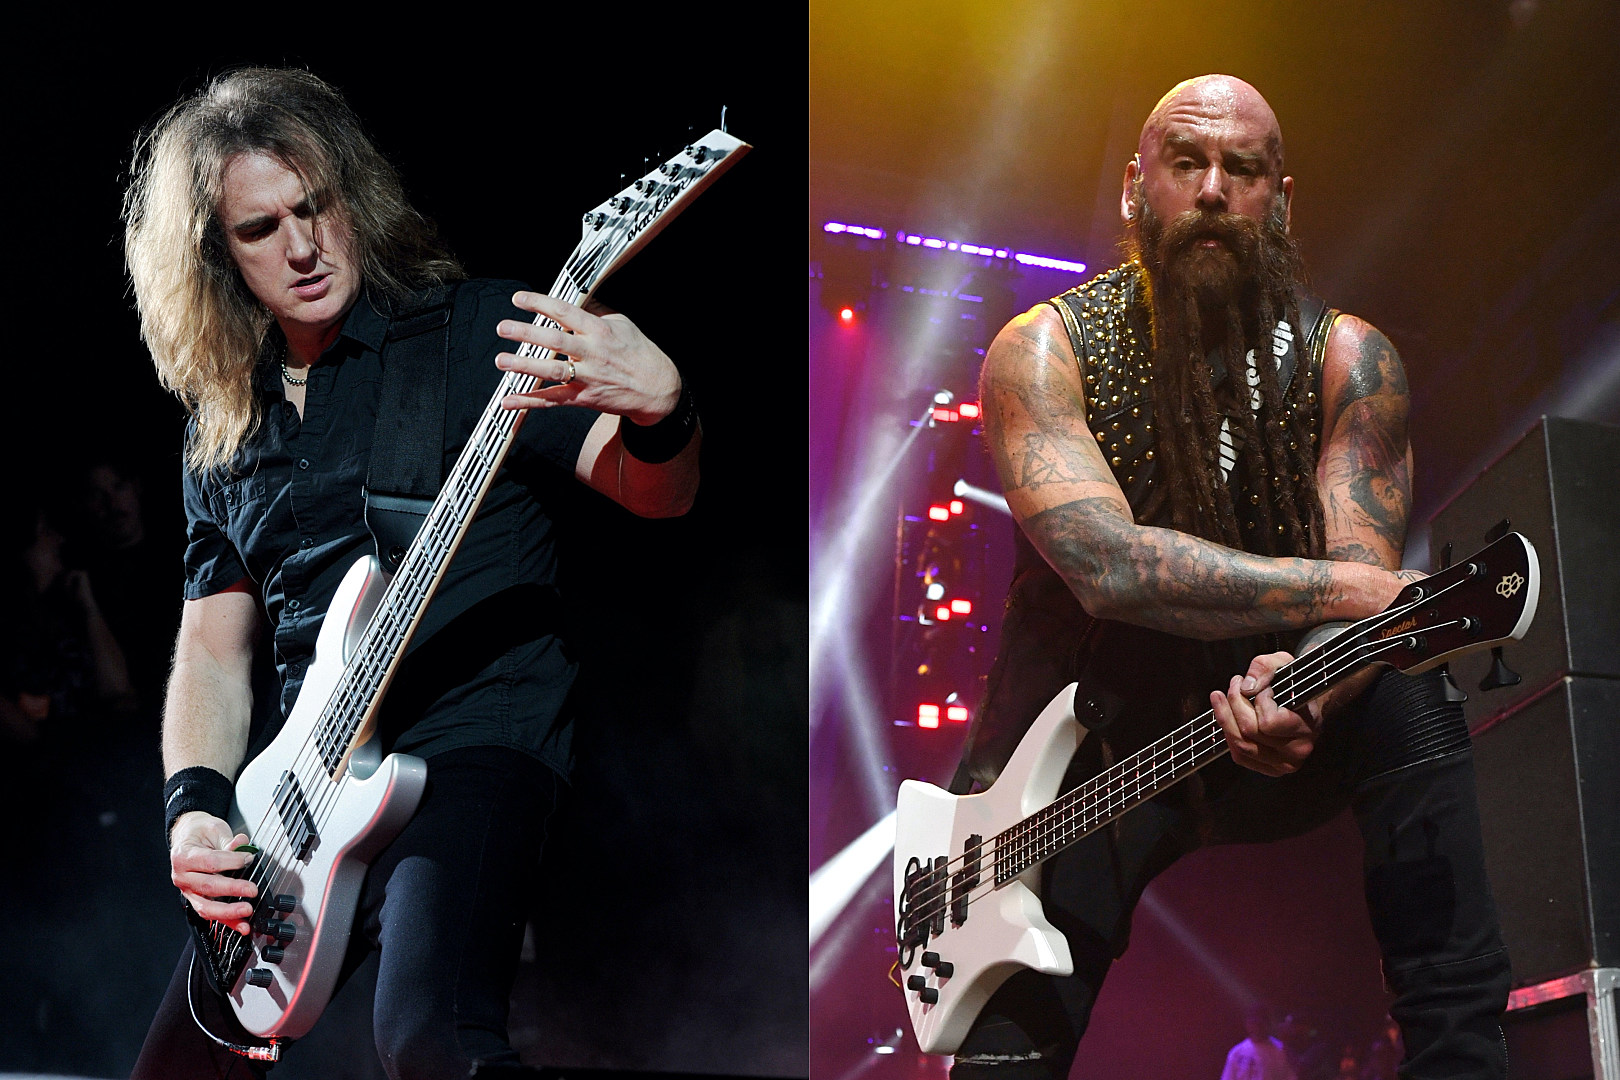 Members of Megadeth, FFDP + 40 More Artists to Live Stream Music Fundraiser